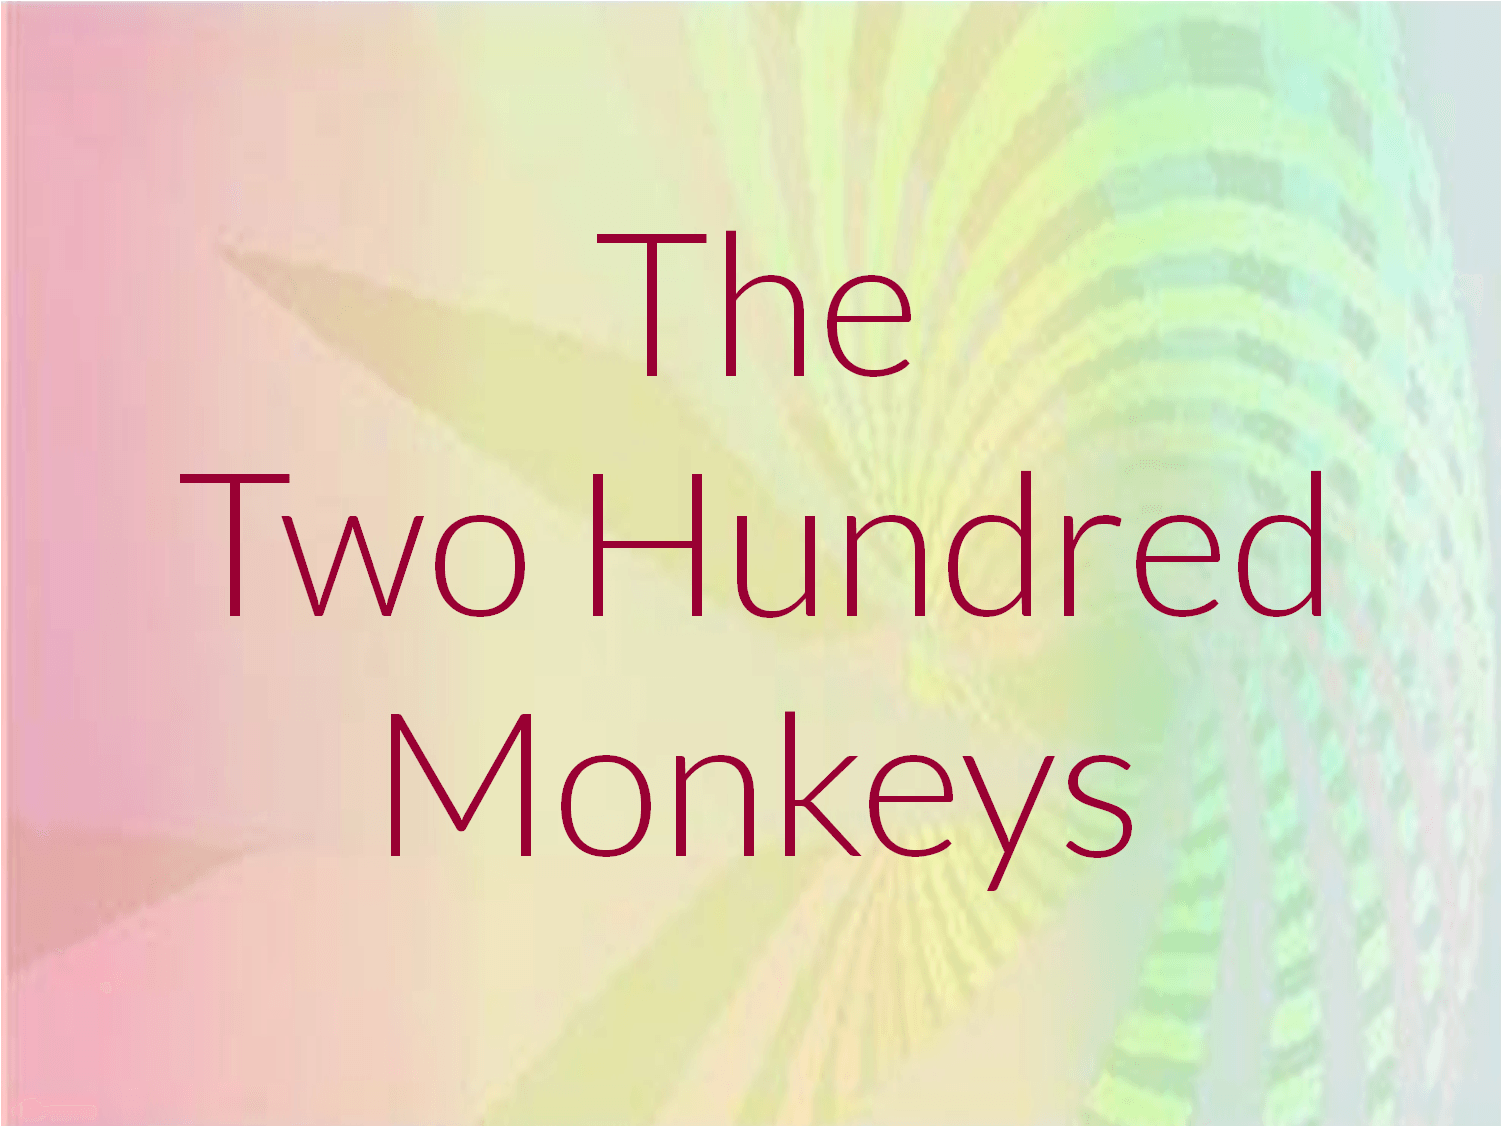 TwoHundredMonkeys1